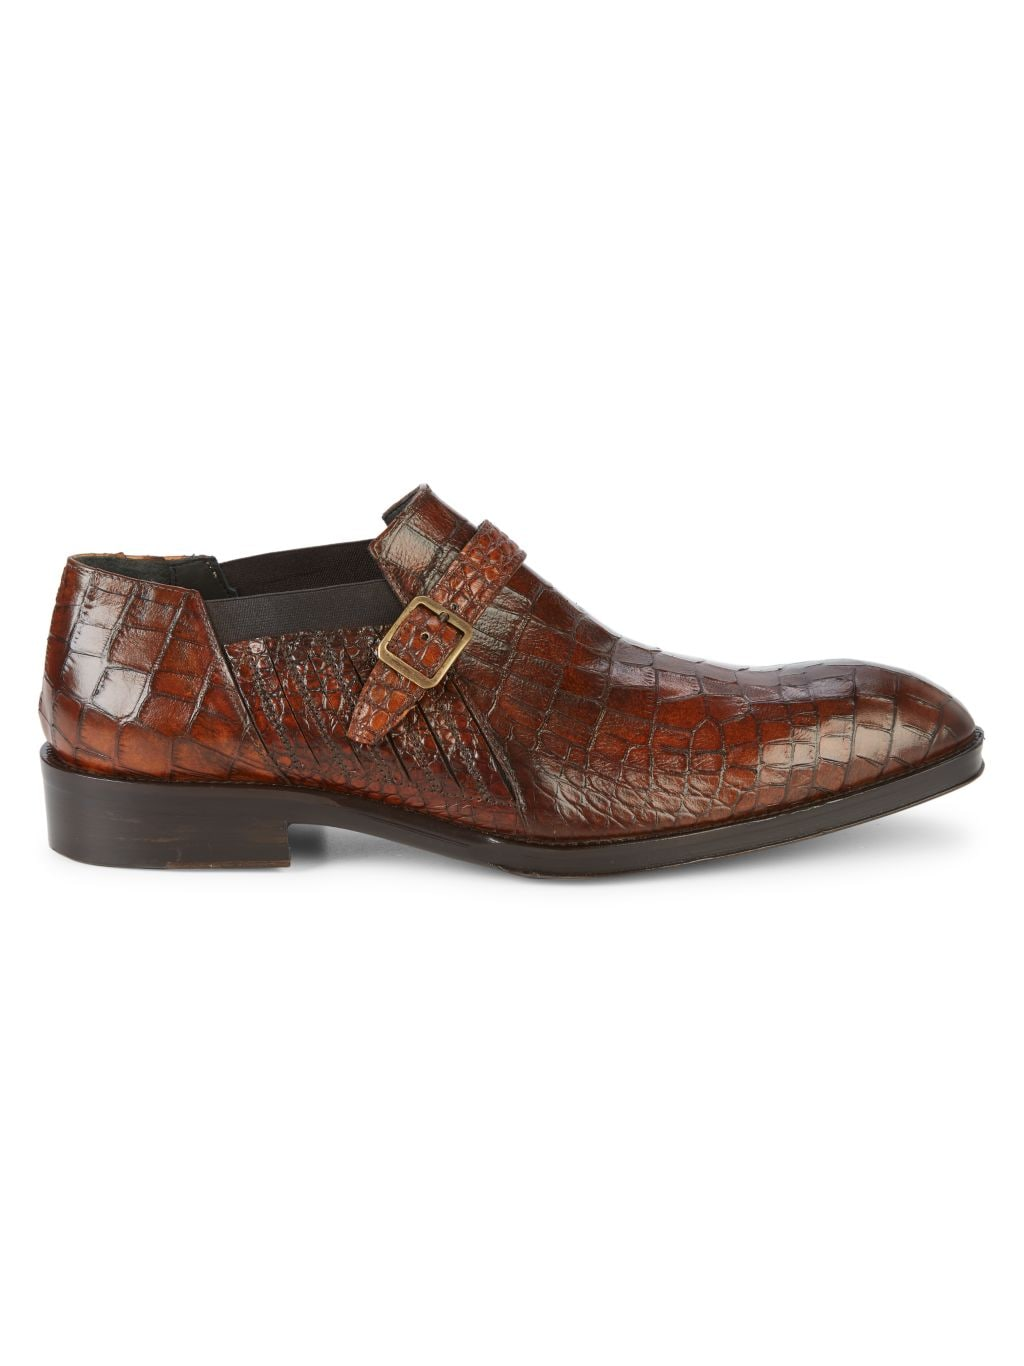 Jo Ghost Croc-Embossed Leather Loafers